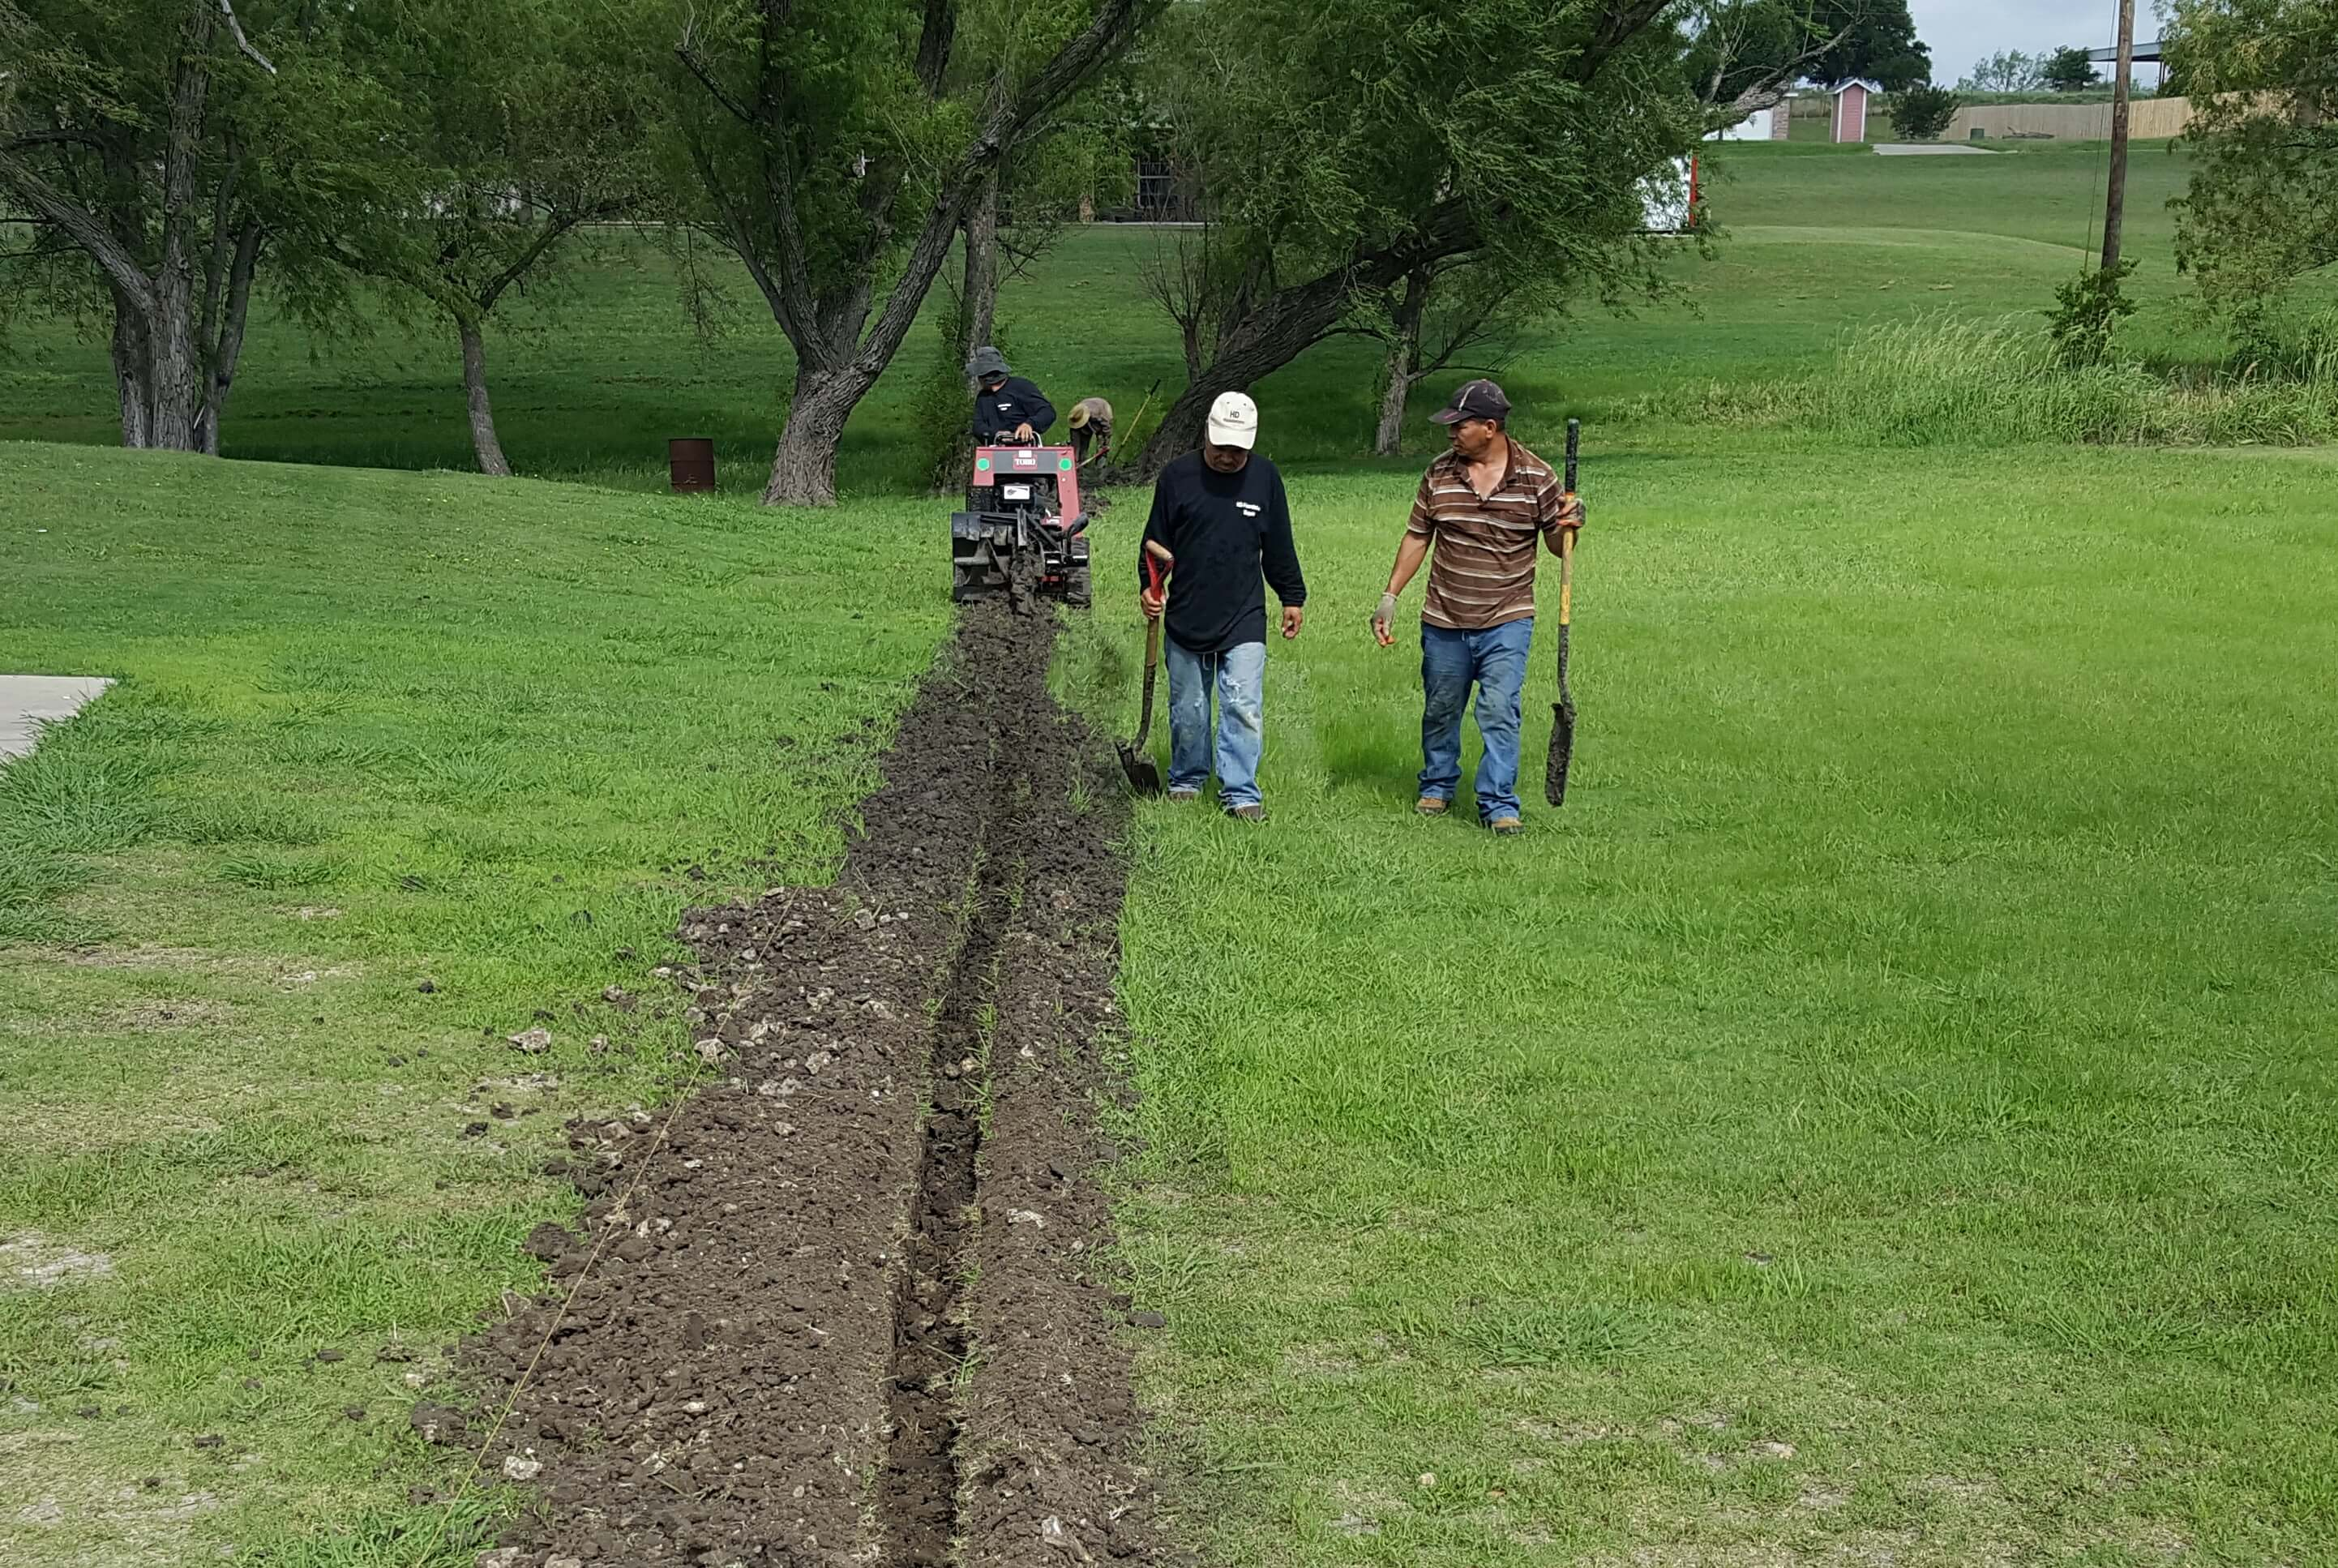 Backyard Drainage Systems drainage systems arlington tx | french drains & surface drains | hd